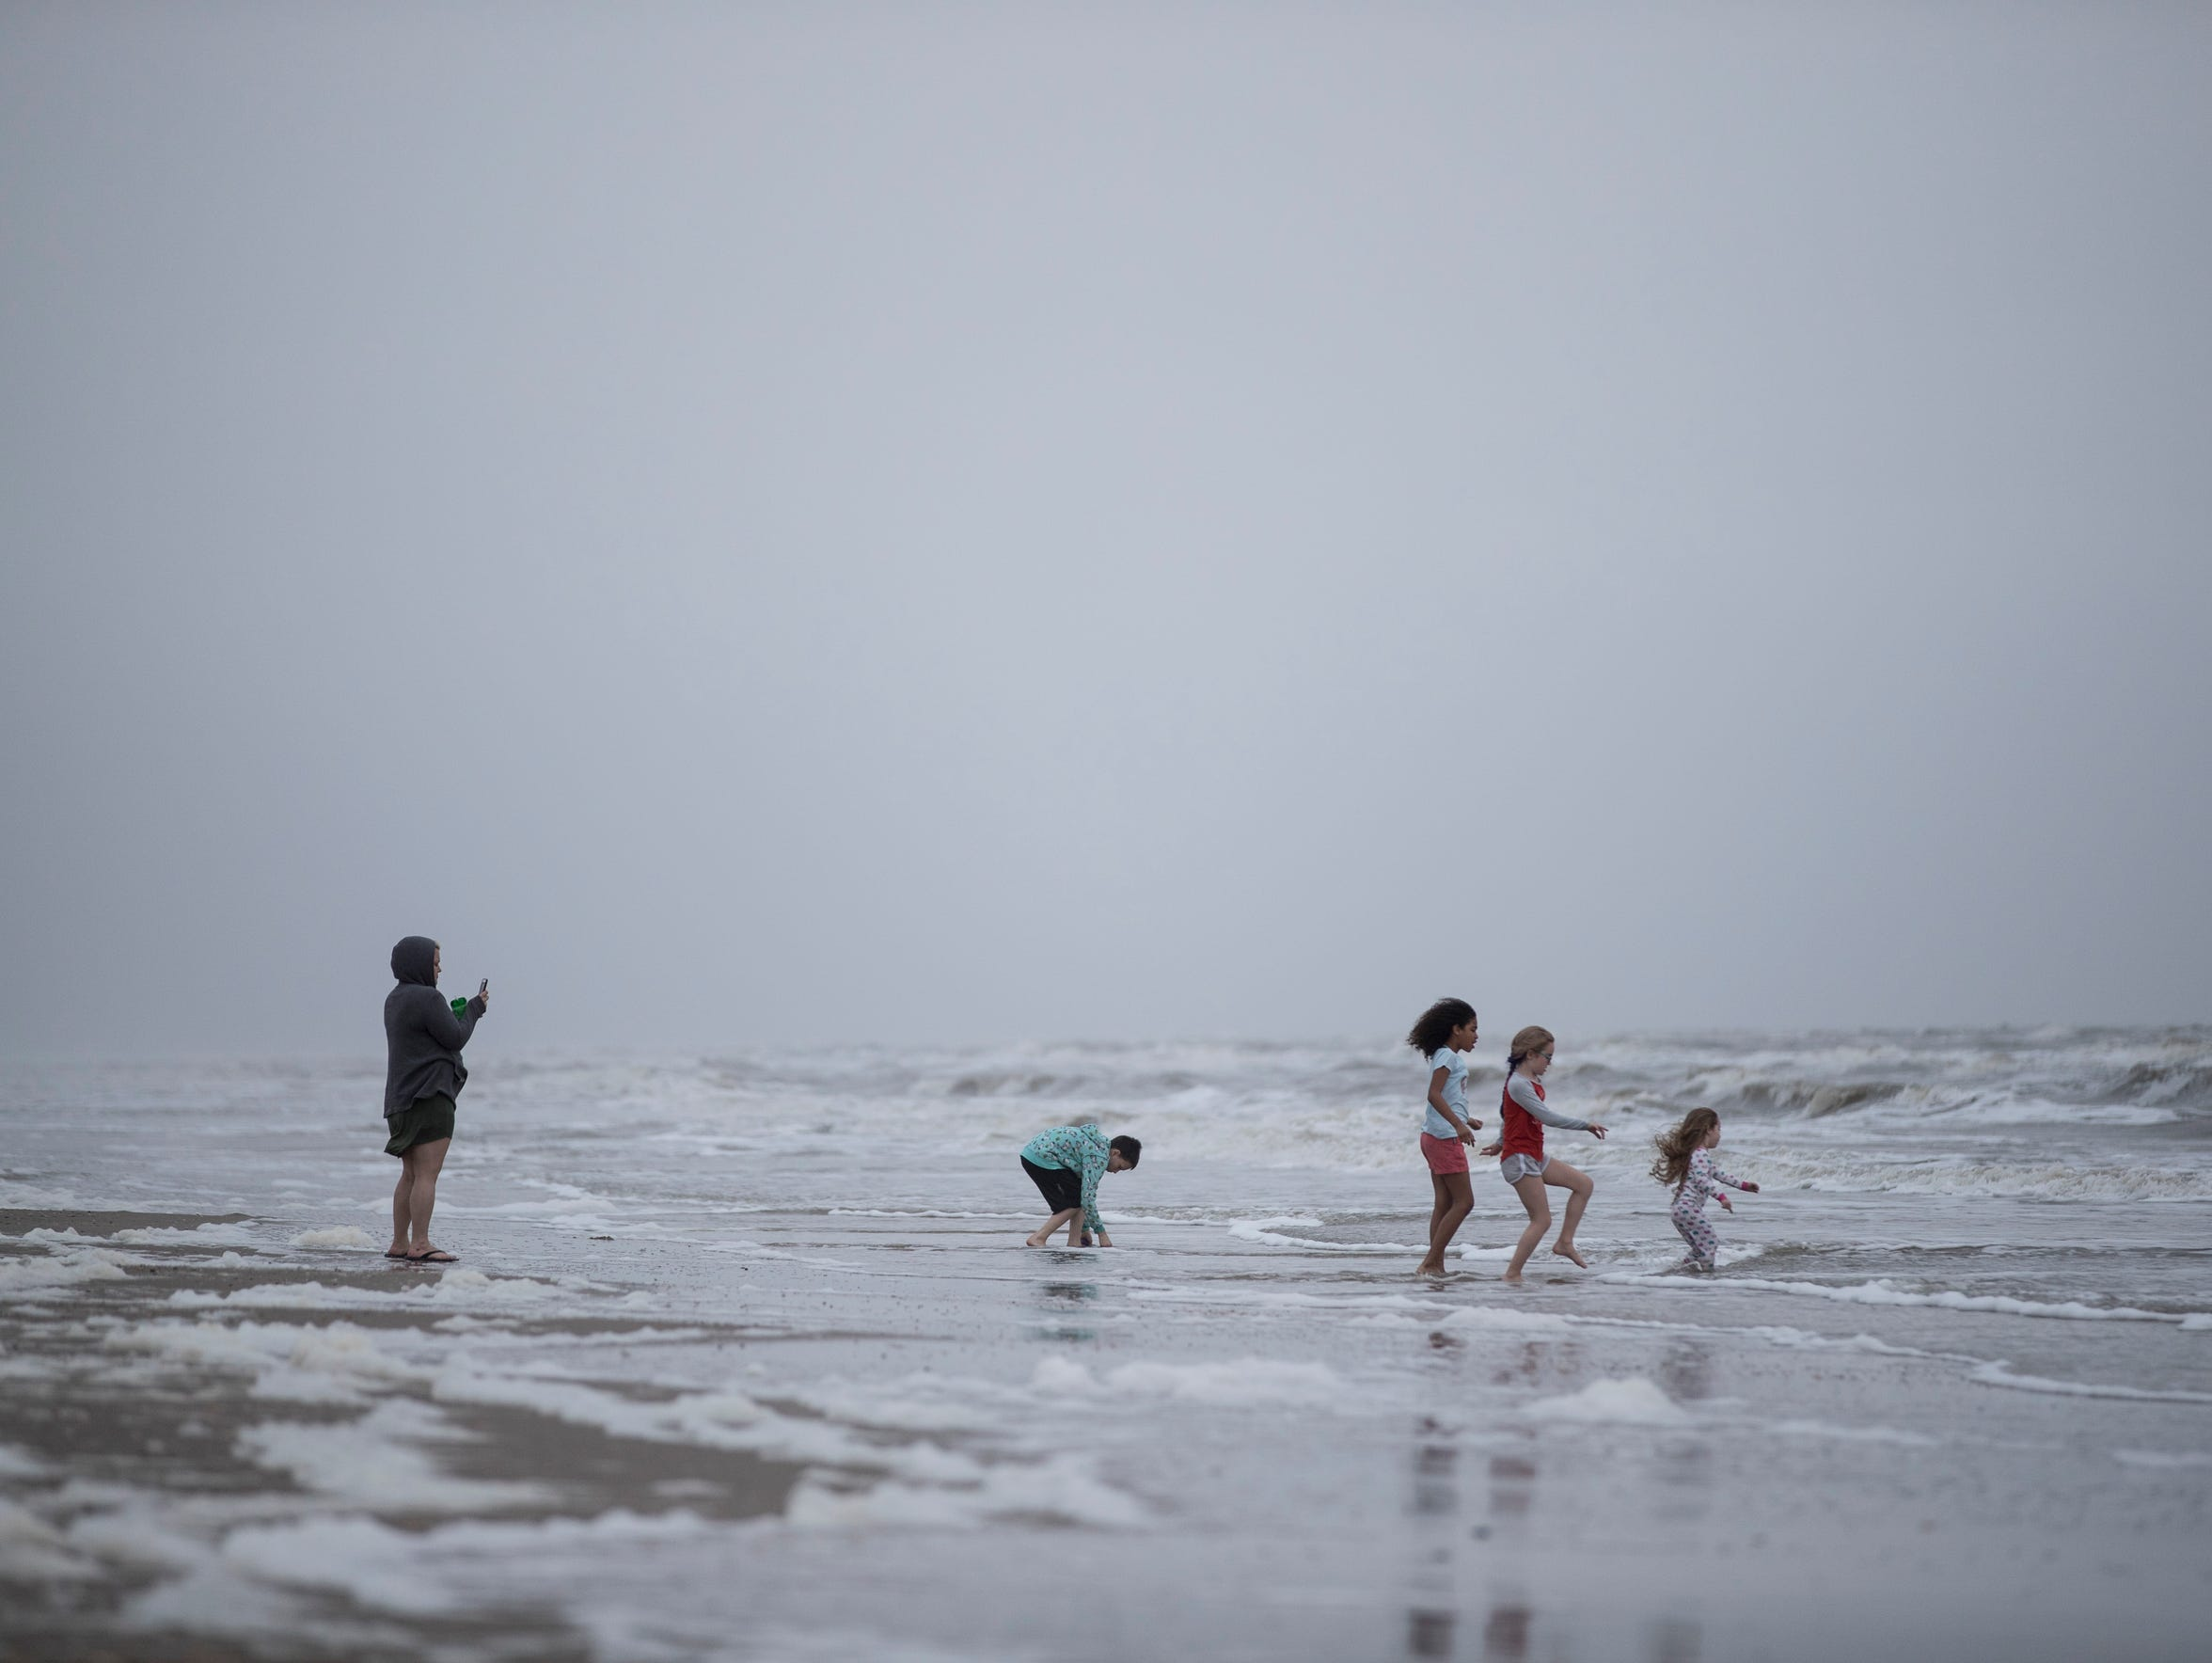 Families play in the water at crystal beach on Saturday,